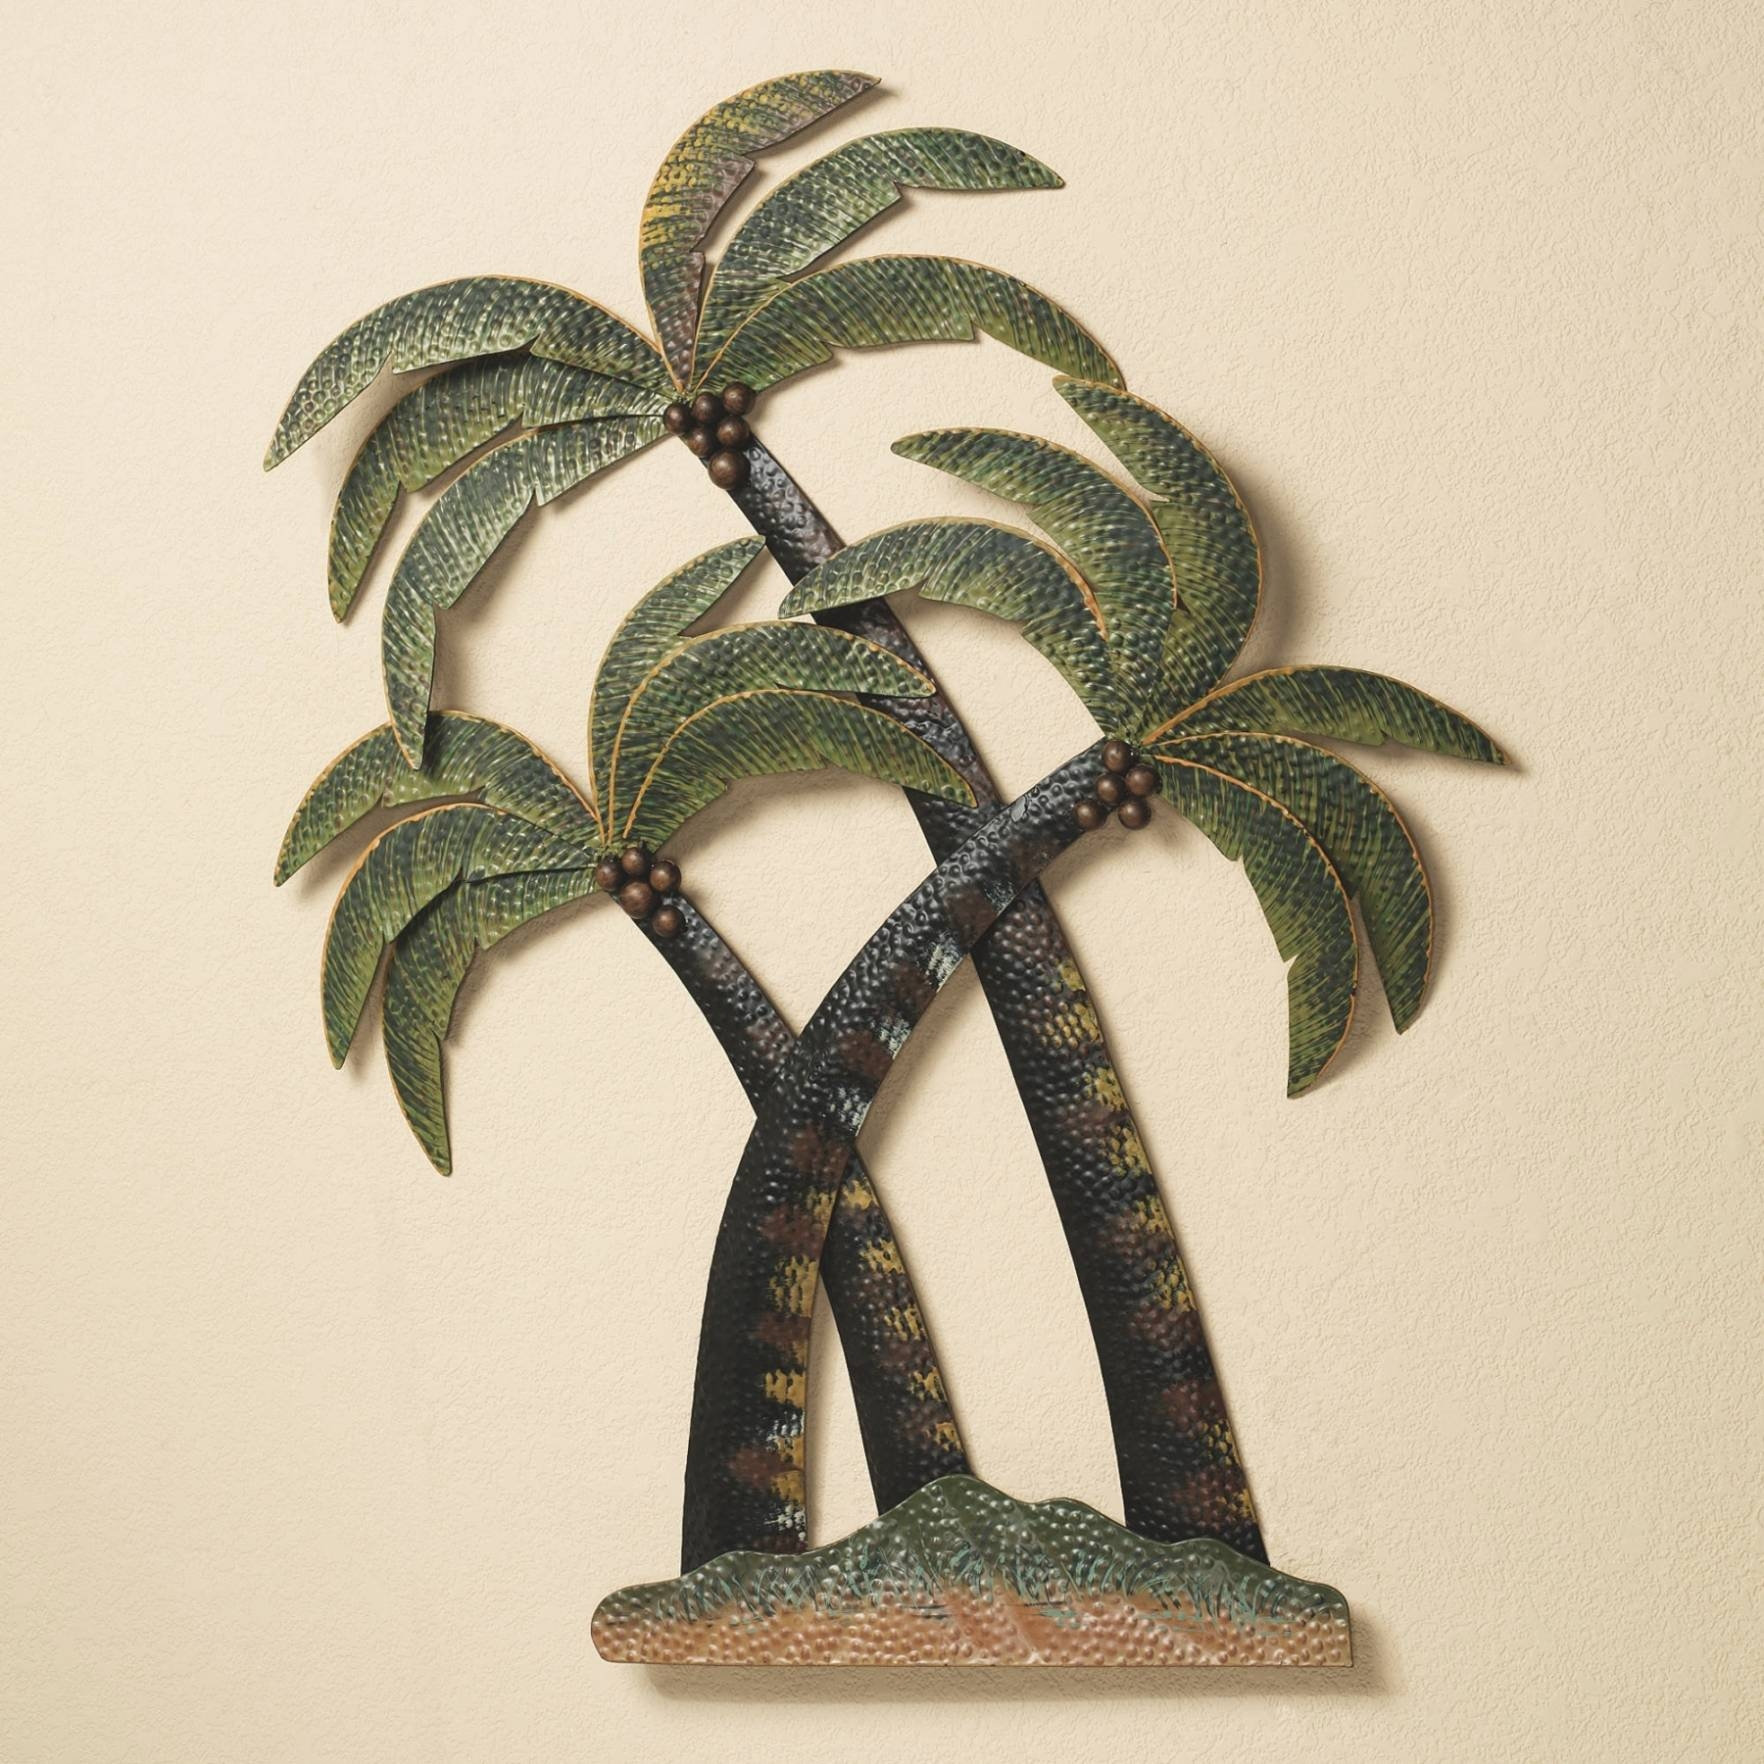 Capizia Branch Metal Wall Sculpture Art Metal Wall Art For With Regard To Newest Bathroom Metal Wall Art (View 8 of 20)